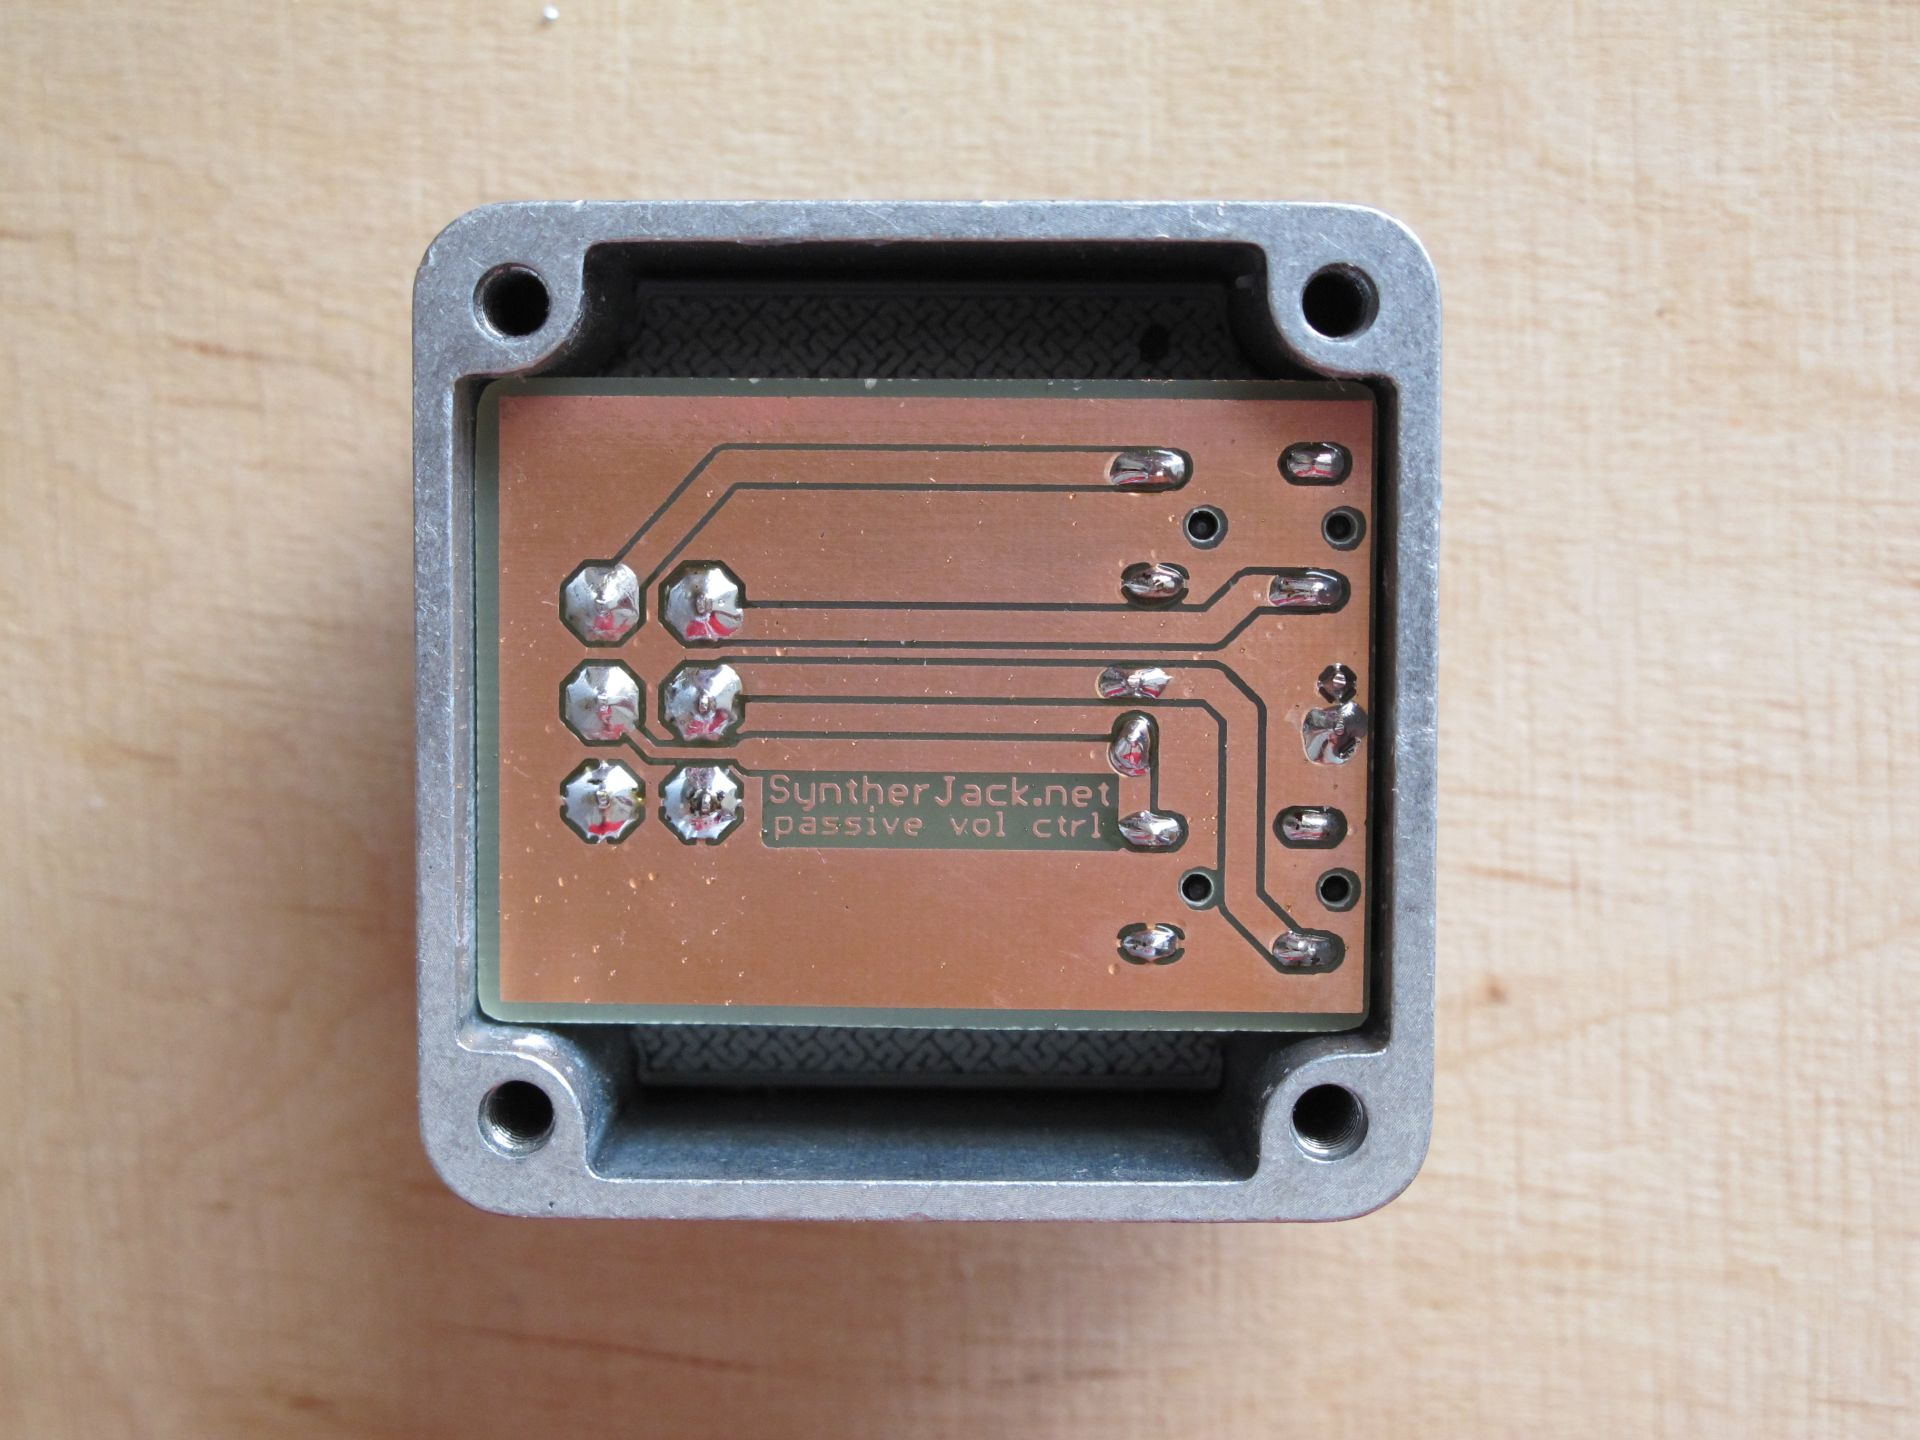 Case withh soldered PCB